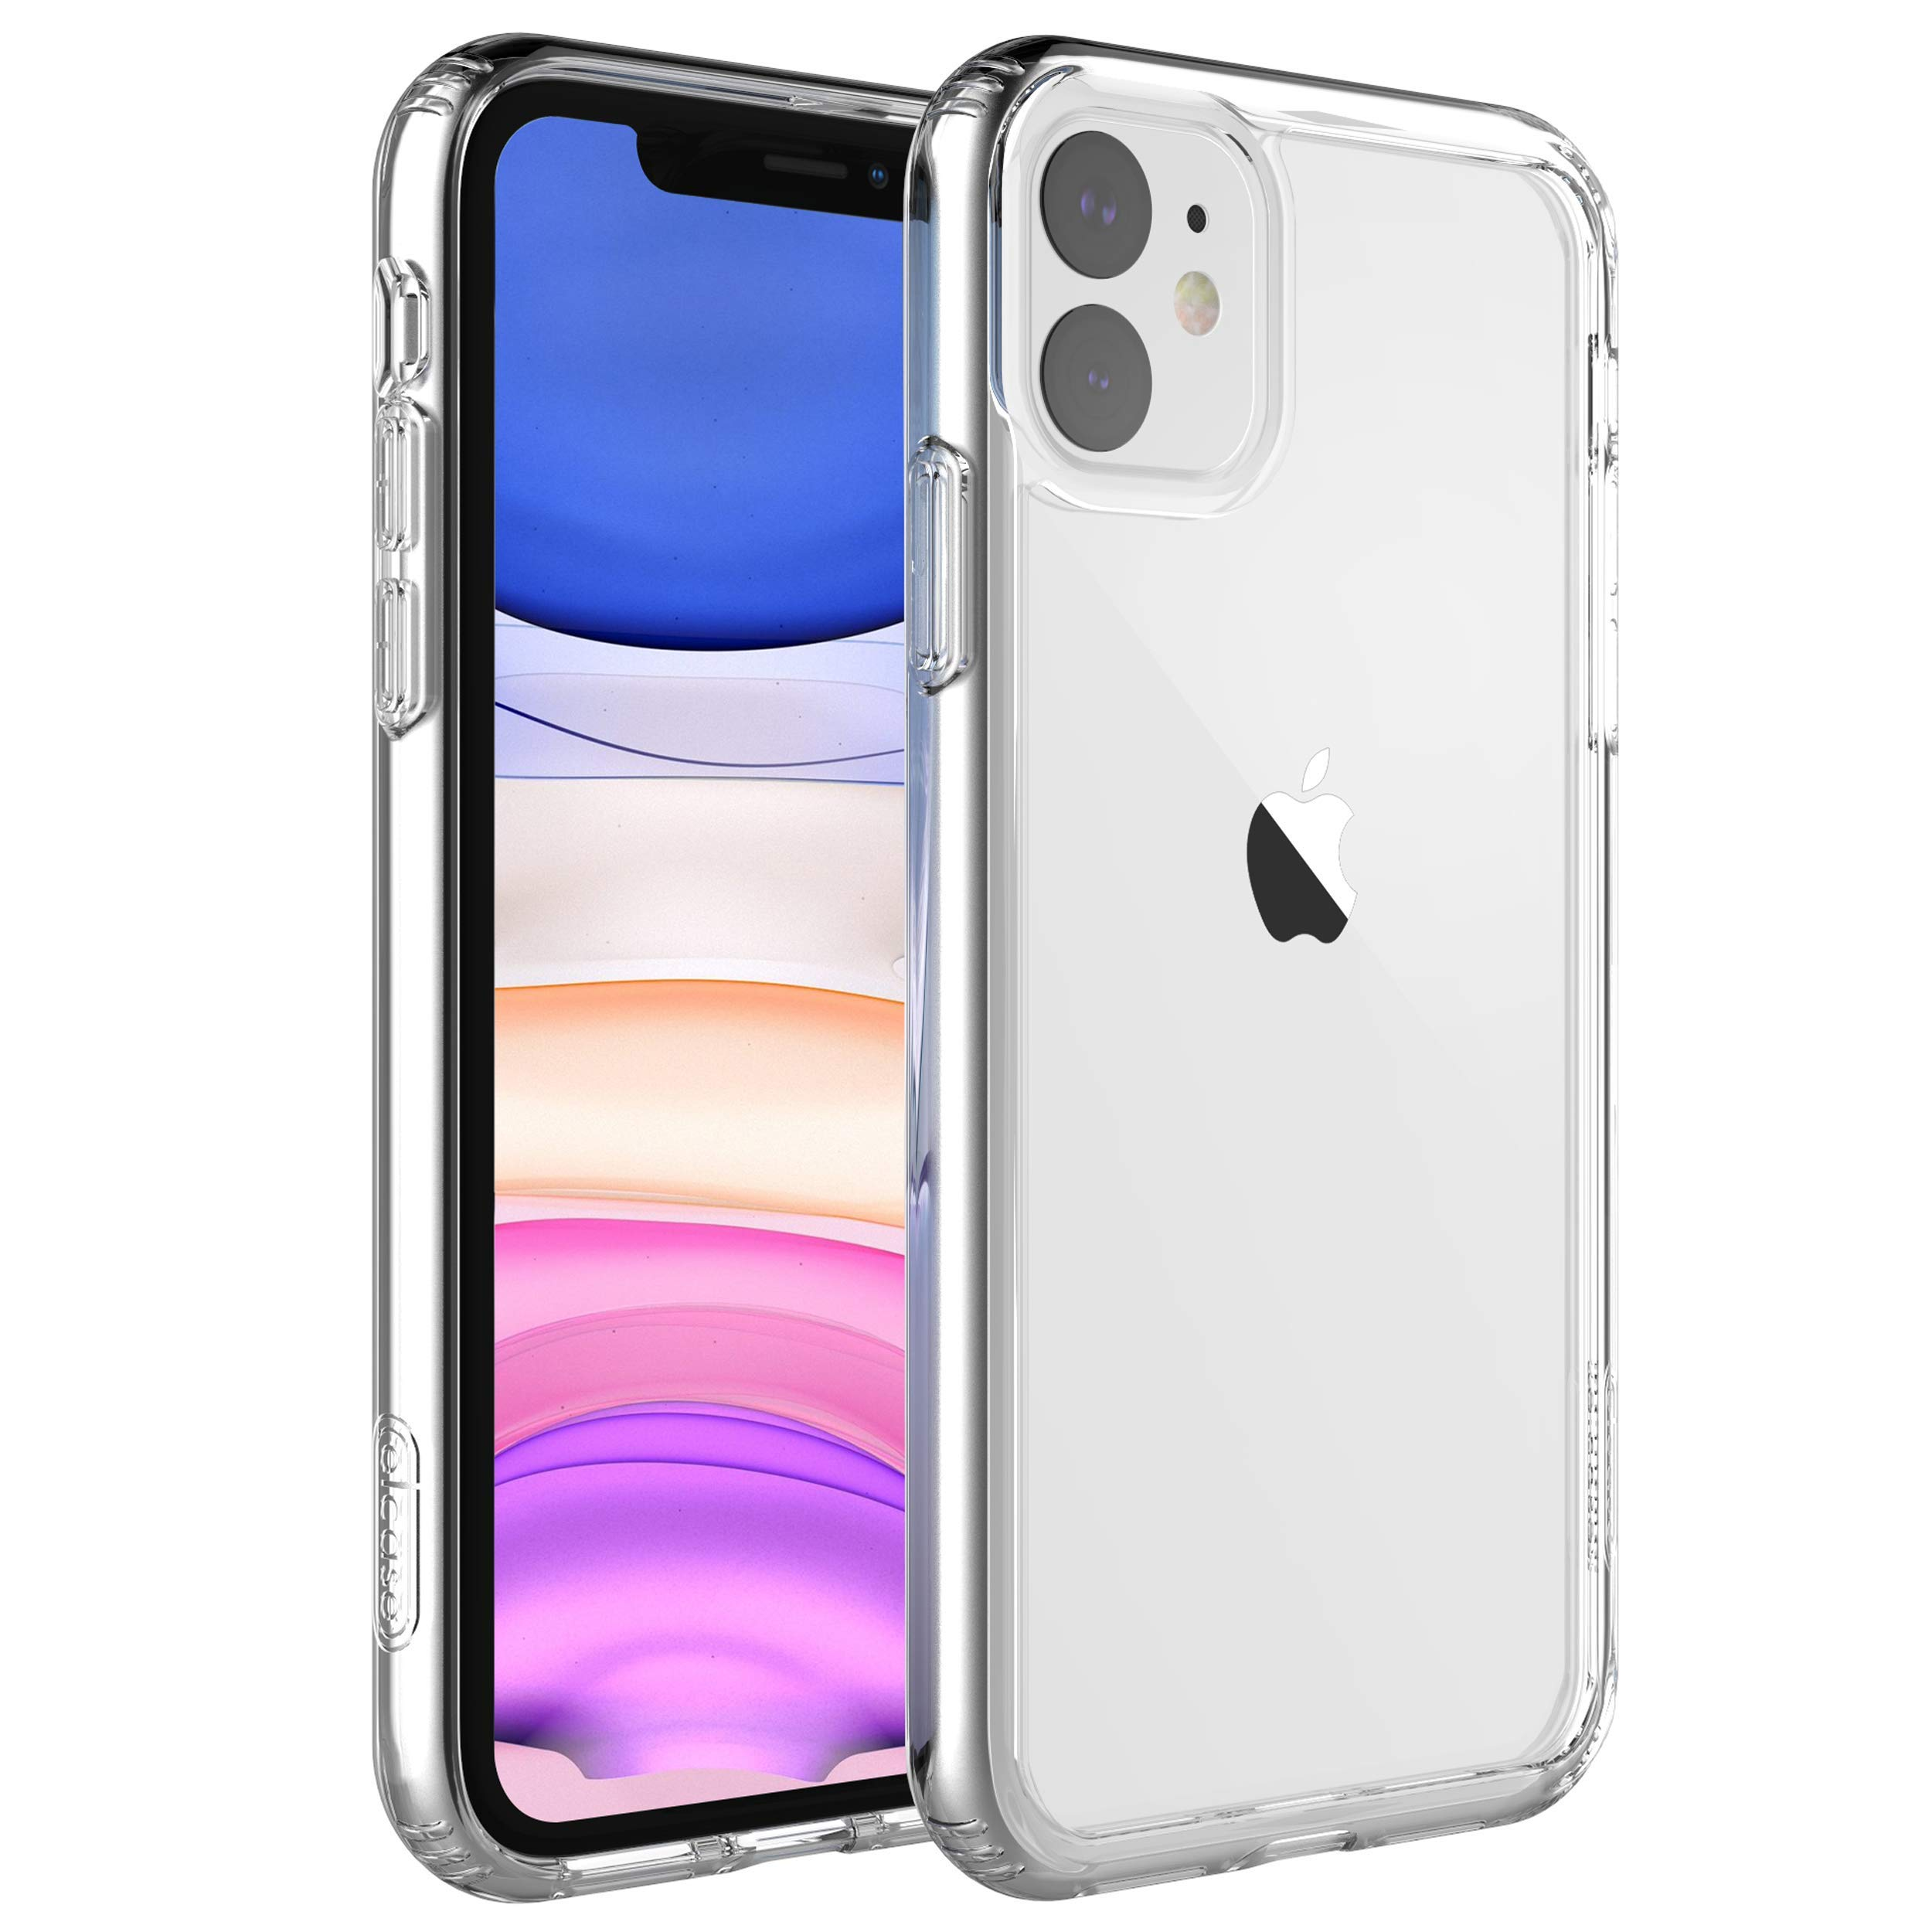 elcase Air Bolster iPhone 11 Clear Case - Protective iPhone 11 Case Shockproof Drop Protection, TPU Bumper, Scratch-Resistant Hard PC Back - iPhone 11 Cover Case 6.1 inch Compatible (Crystal Clear)